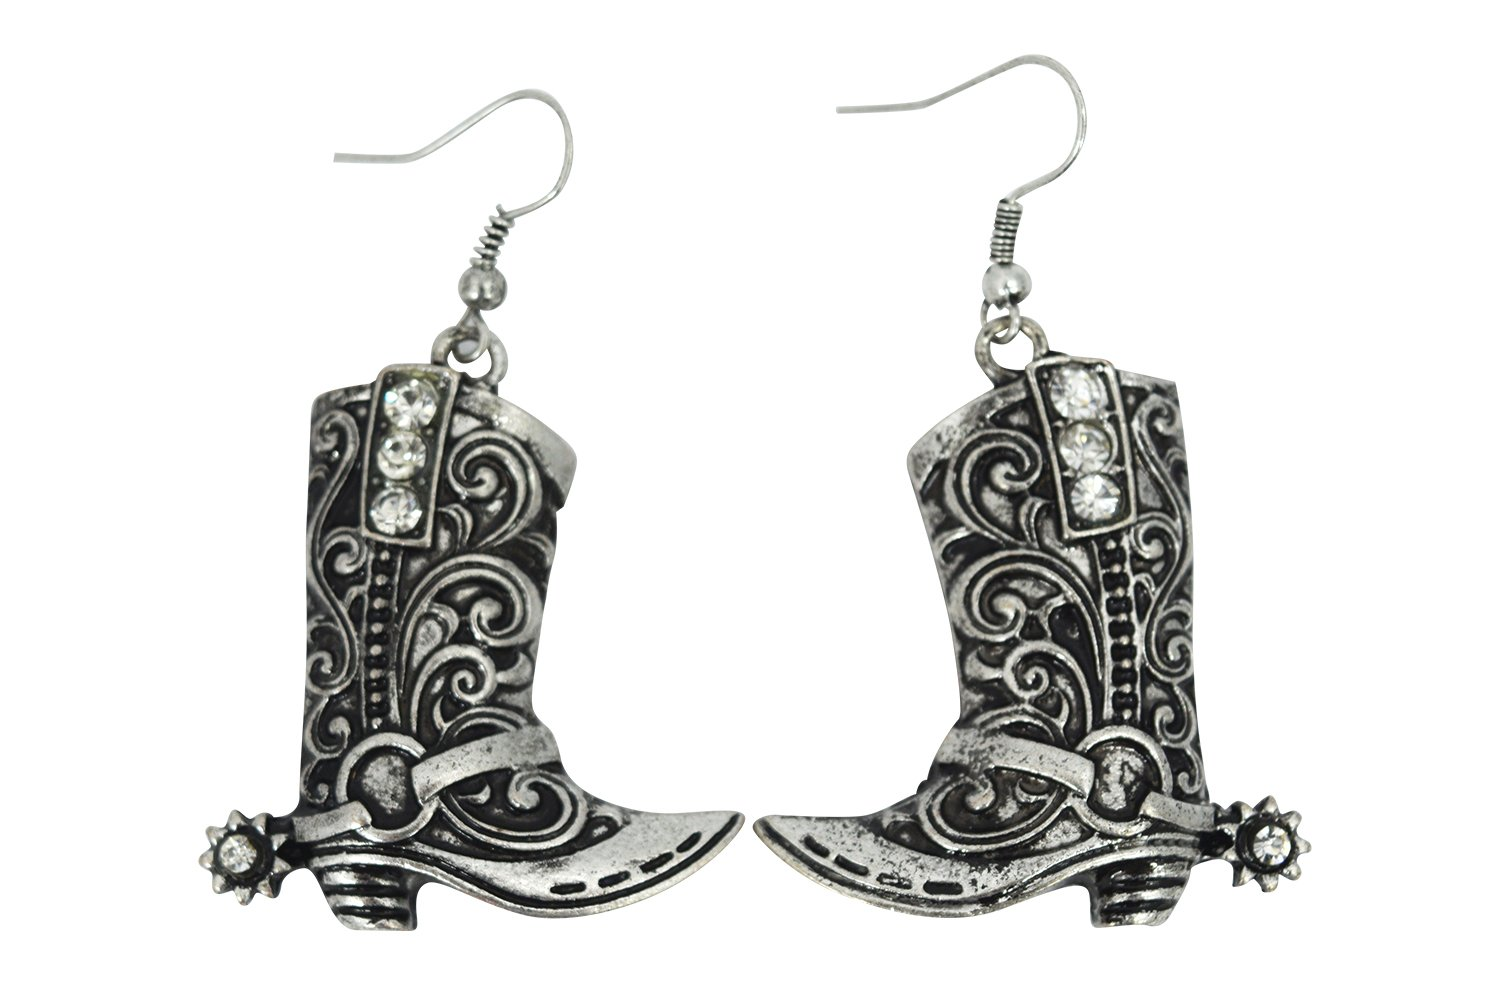 Western Cowgirl cowboy boot earrings silver Tone